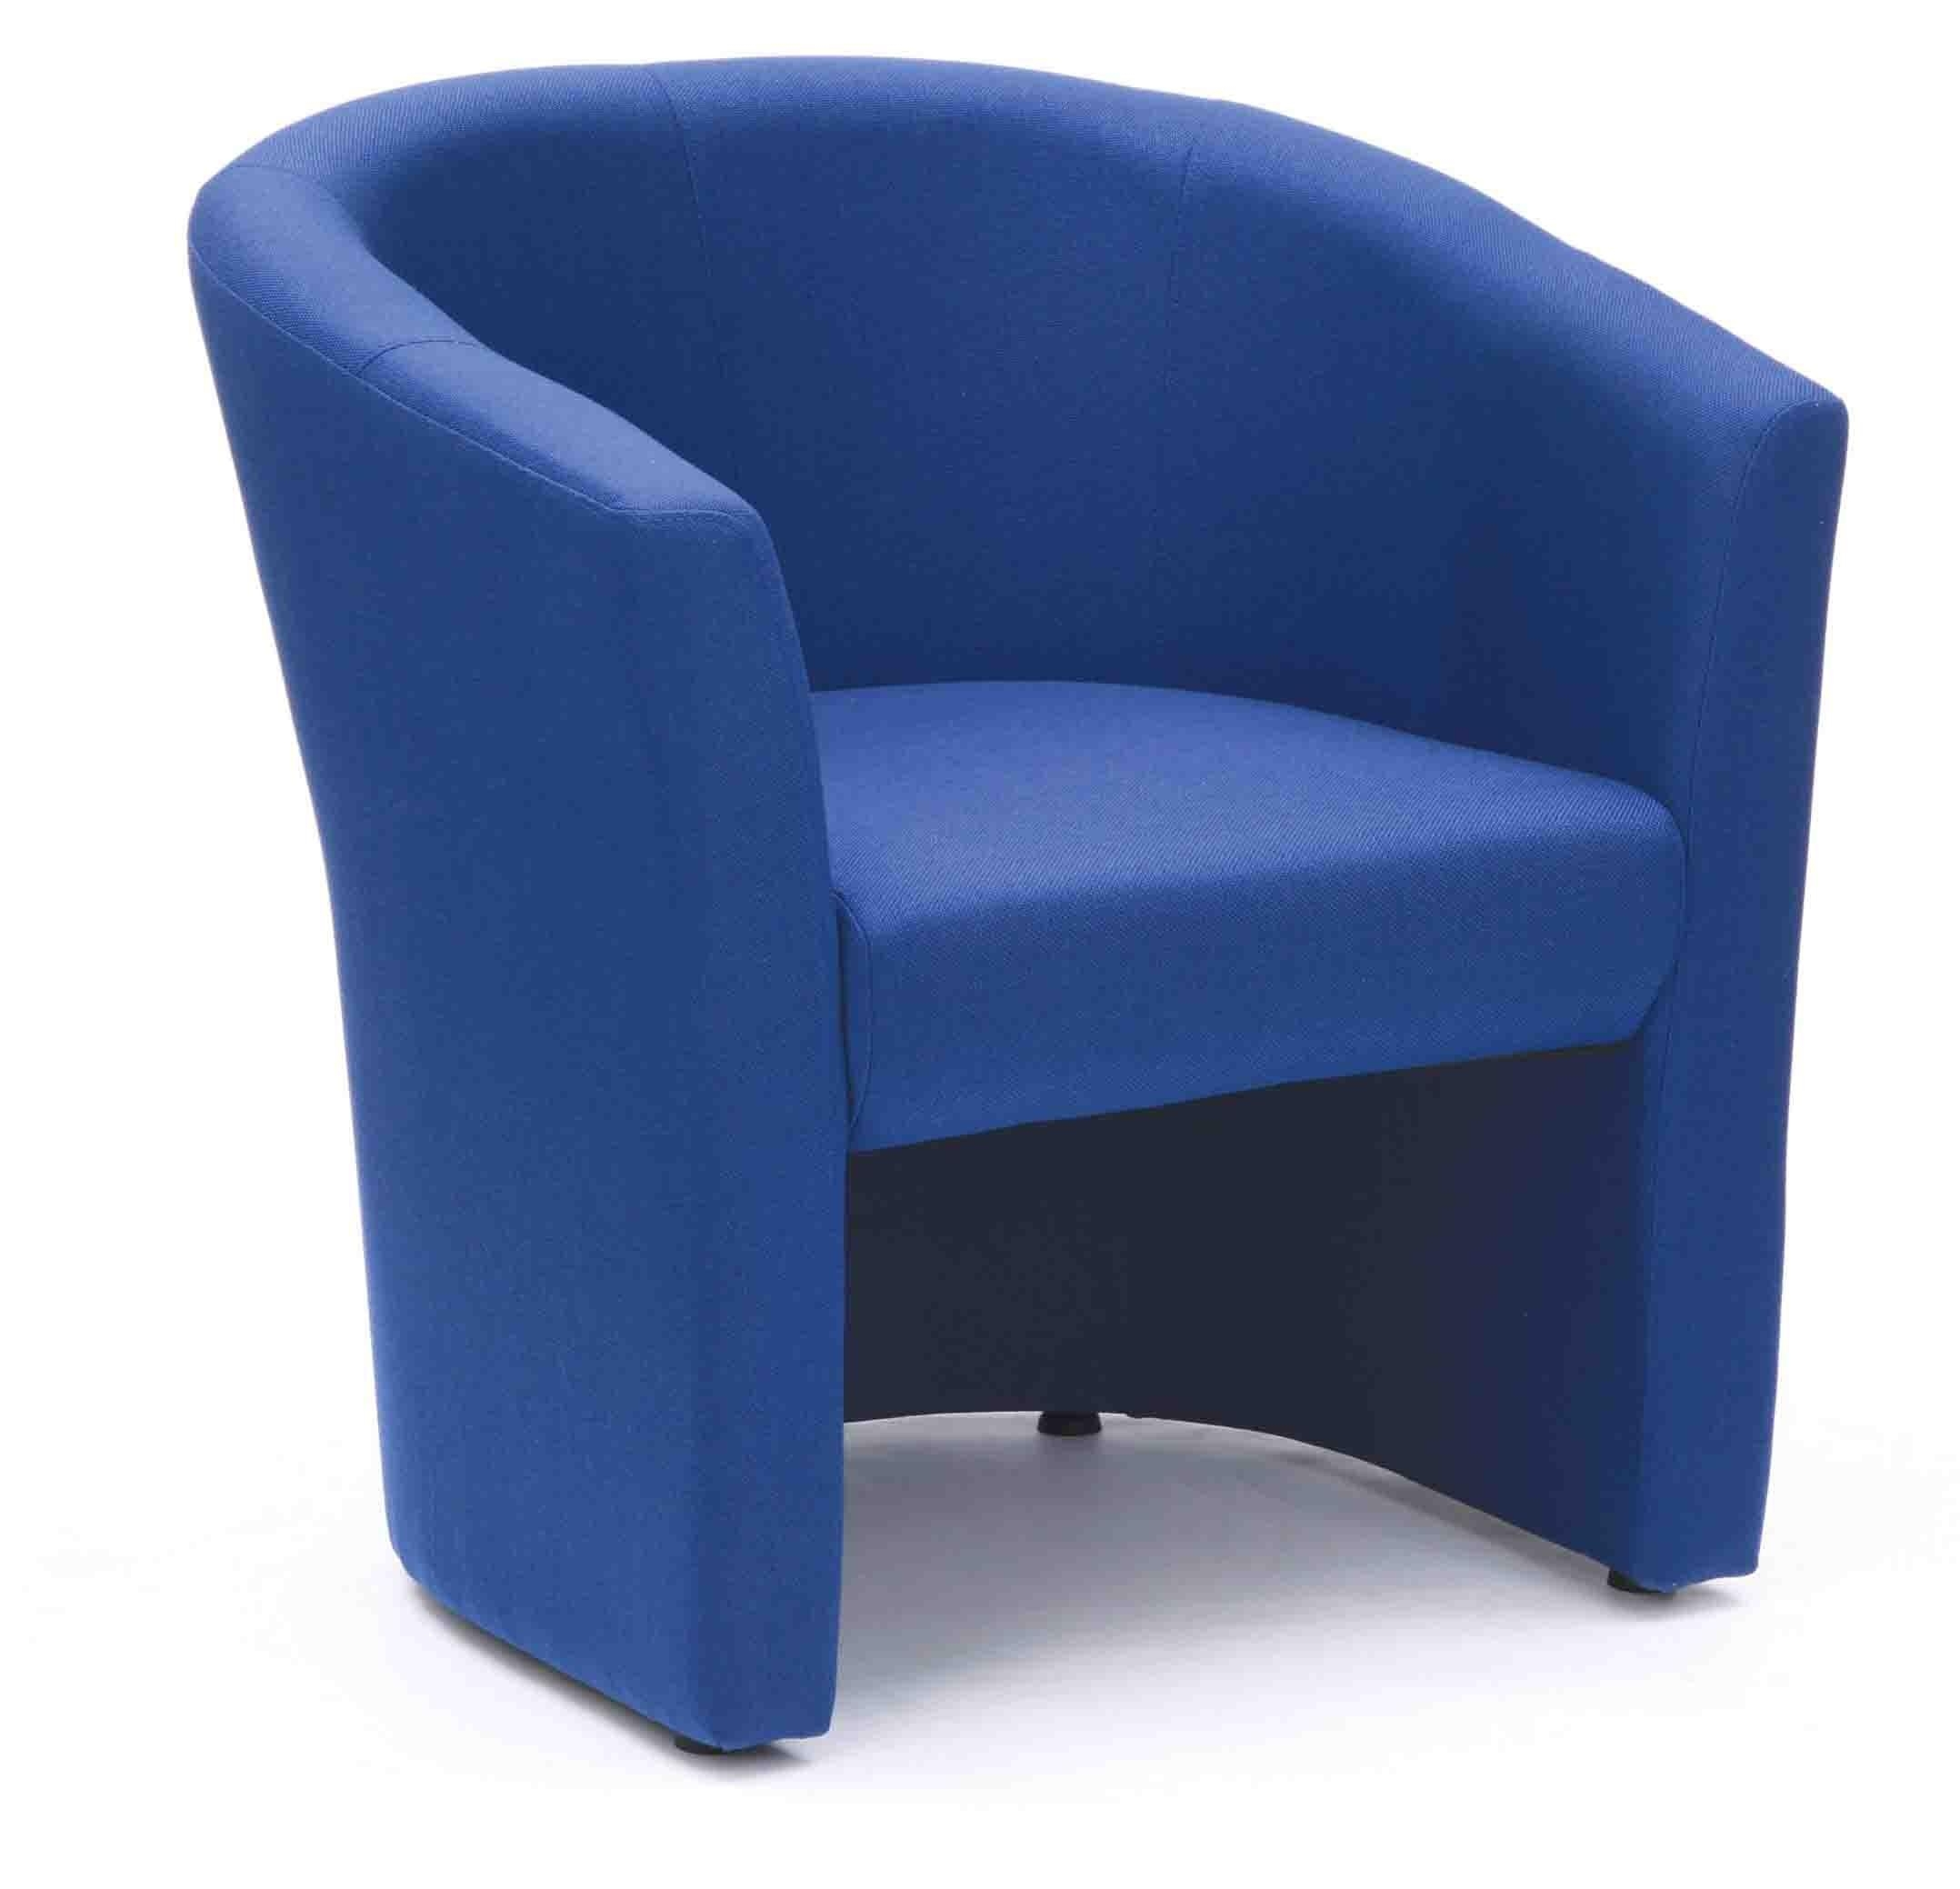 Blue Sofa Chair | Sofa Gallery | Kengire For Blue Sofa Chairs (Image 6 of 20)